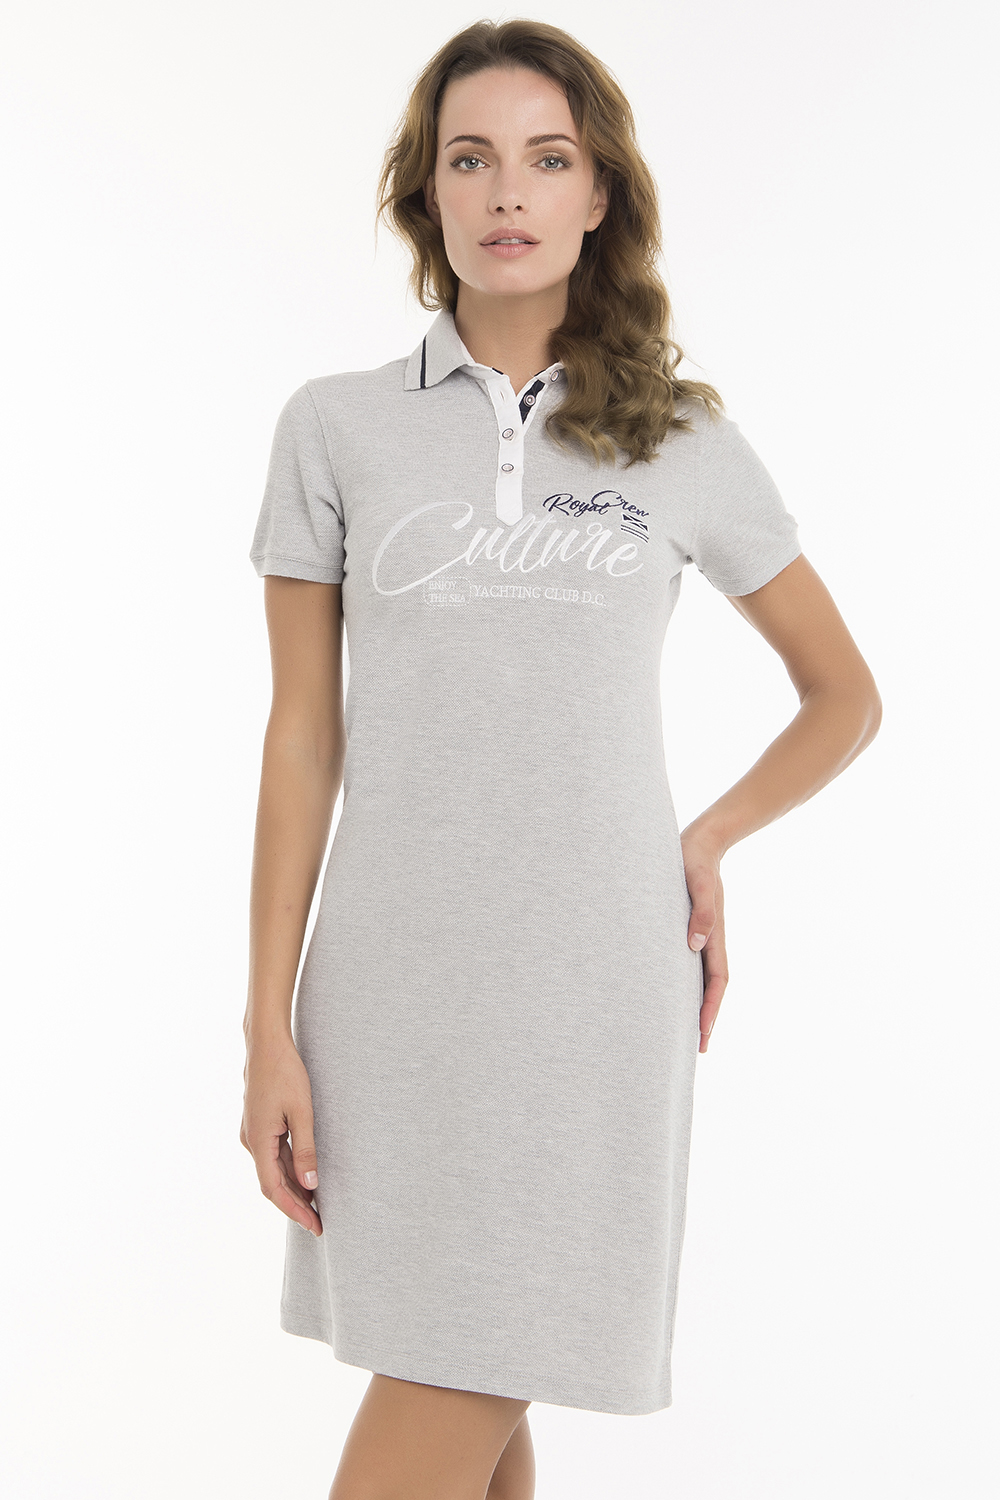 Damen Dress GRAU MEL. mit Print Baumwolle